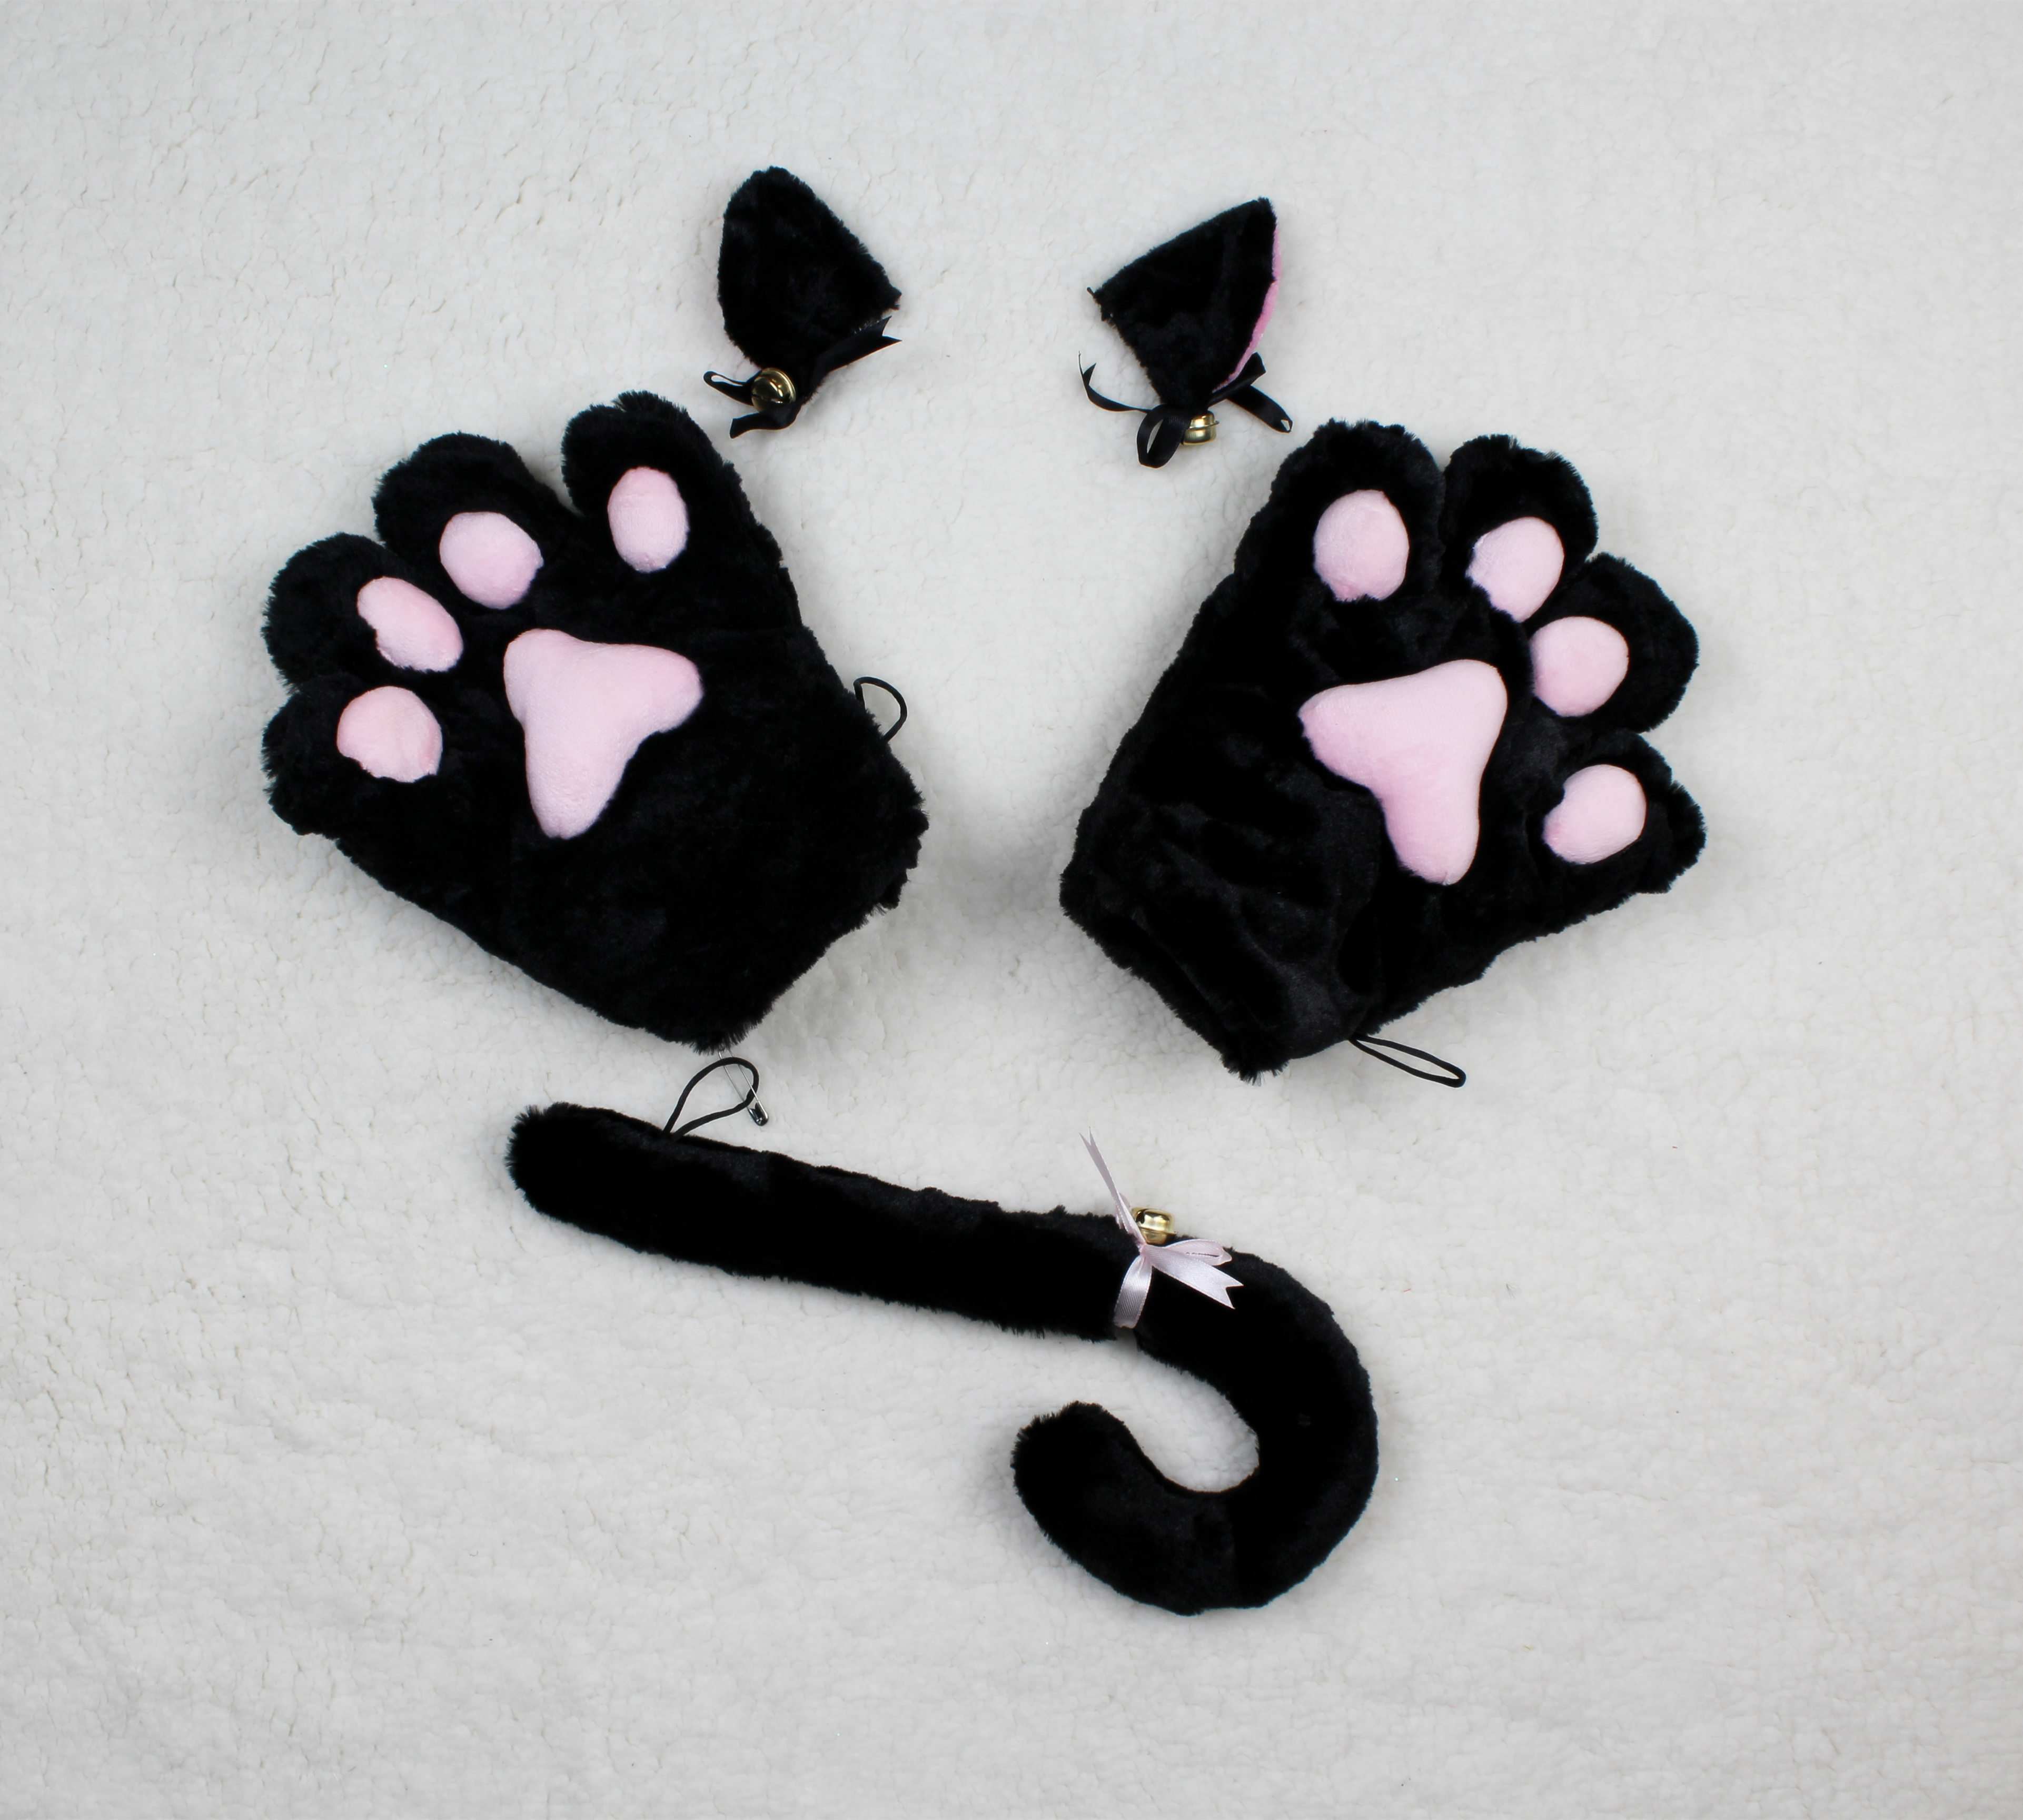 Cosplay Cat Paws Tail Ears Lolita Maid Cat Coz Himi Store Online